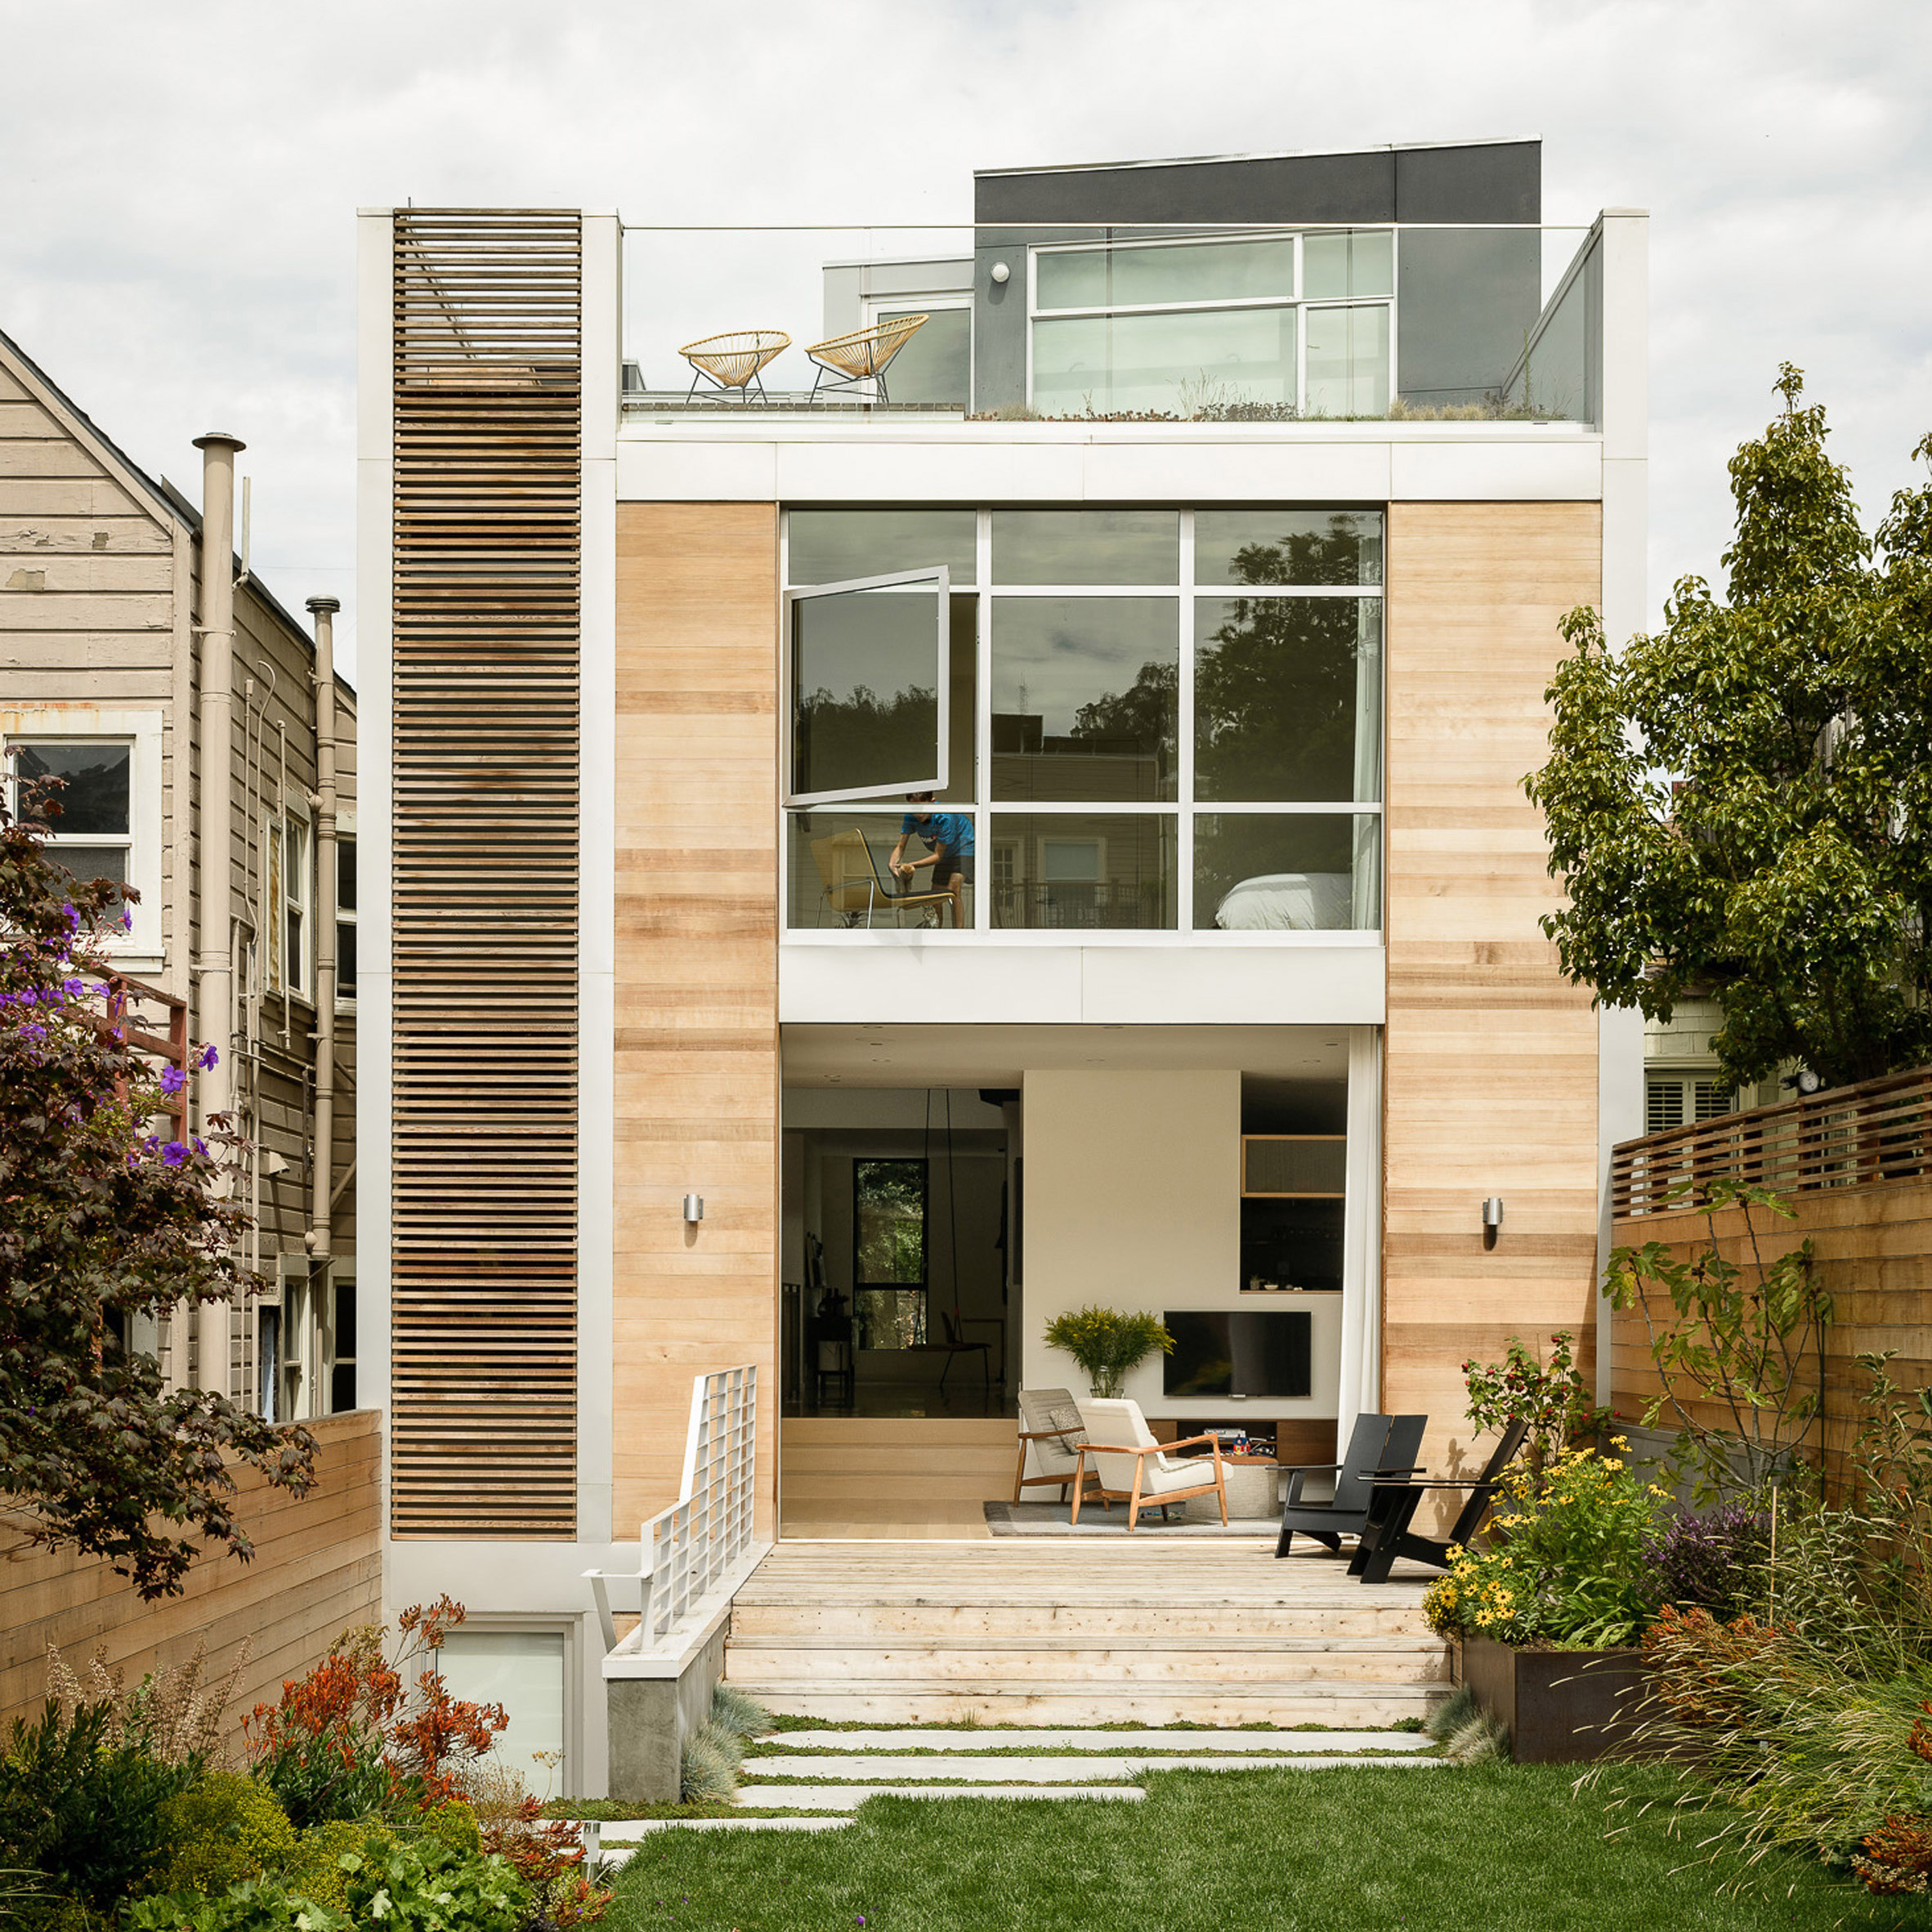 Architectural Design Of Residential Building Feldman Designs San Francisco Home With Roof Garden And Indoor Swing